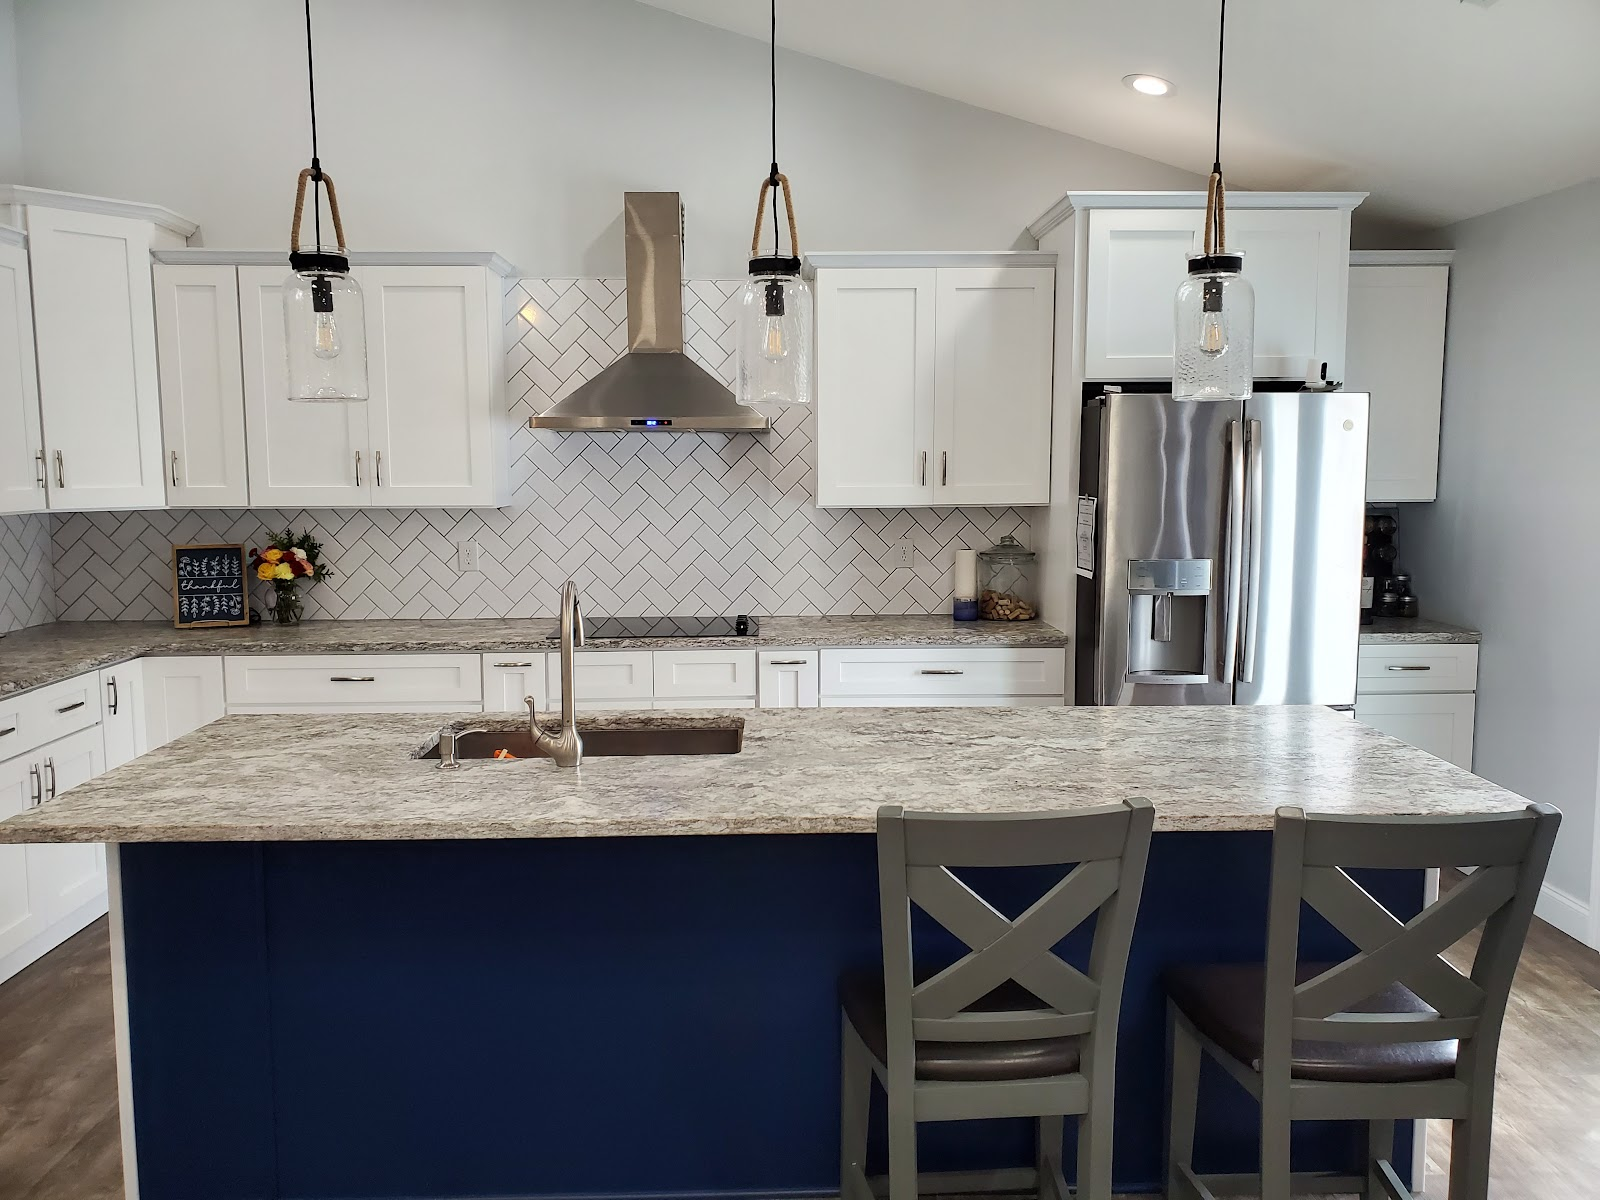 traditional kitchen design with white shaker cabinets, herringbone subway tile backsplash, stainless steel appliances and navy center island